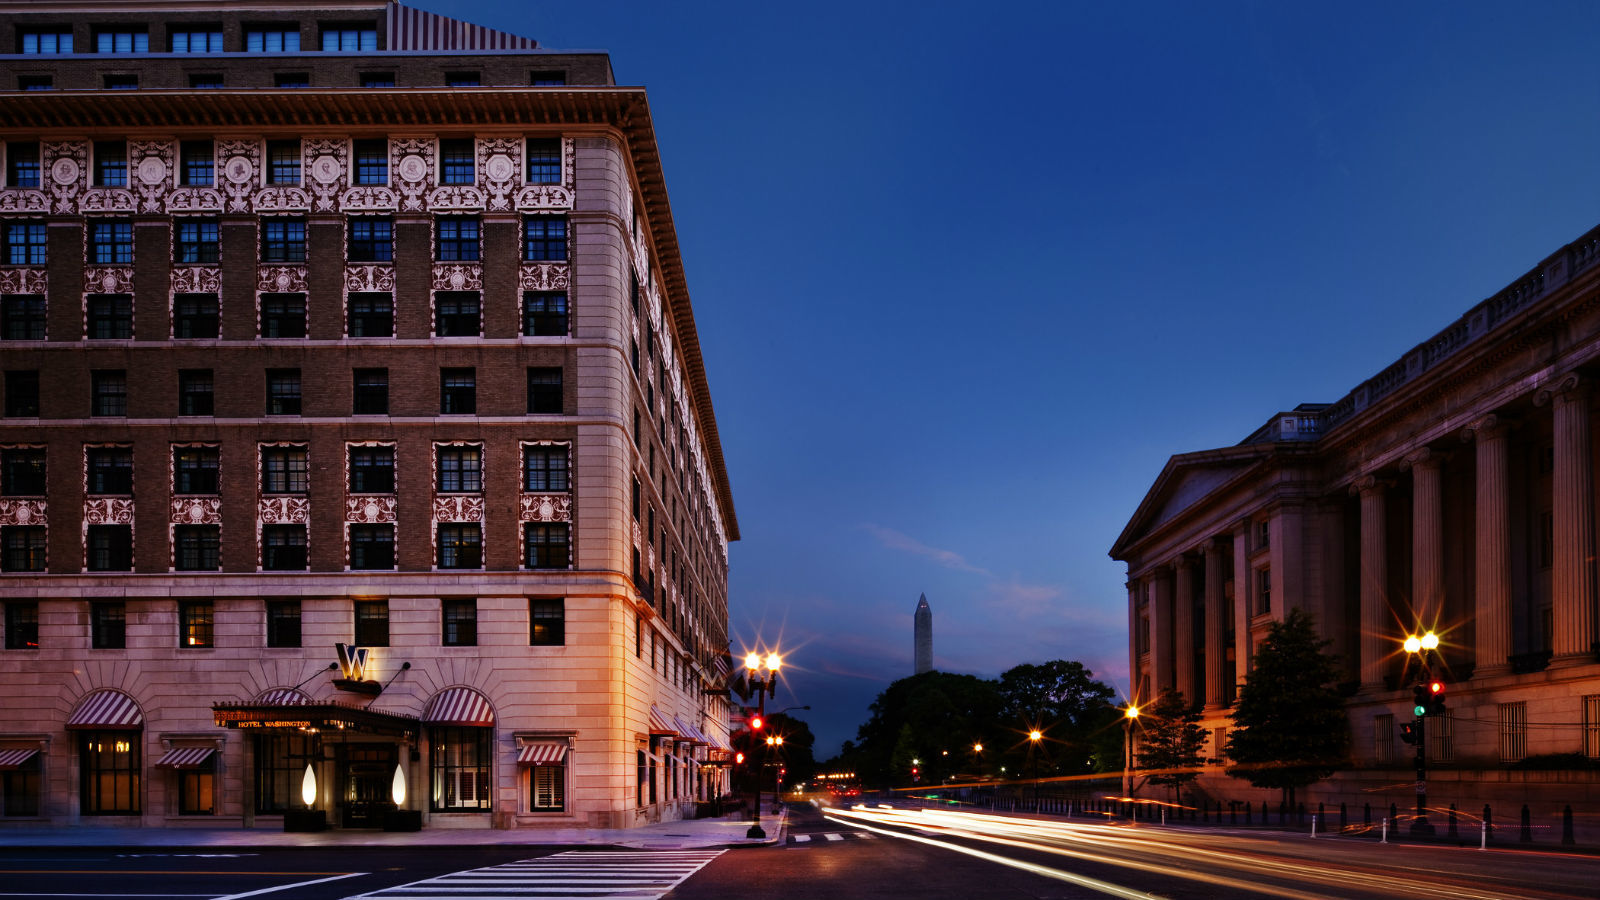 Downtown Washington D.C. Hotel Features - Farewell Kiosk